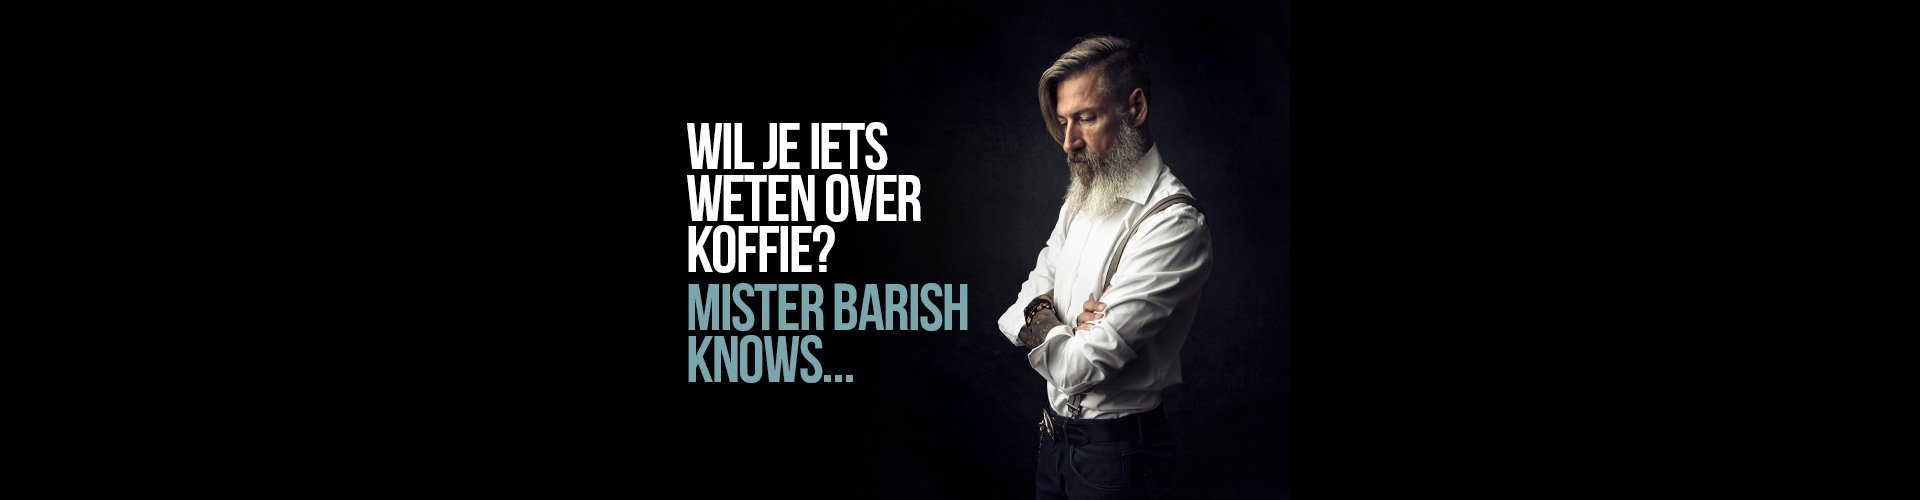 Mister Barish koffie Blog